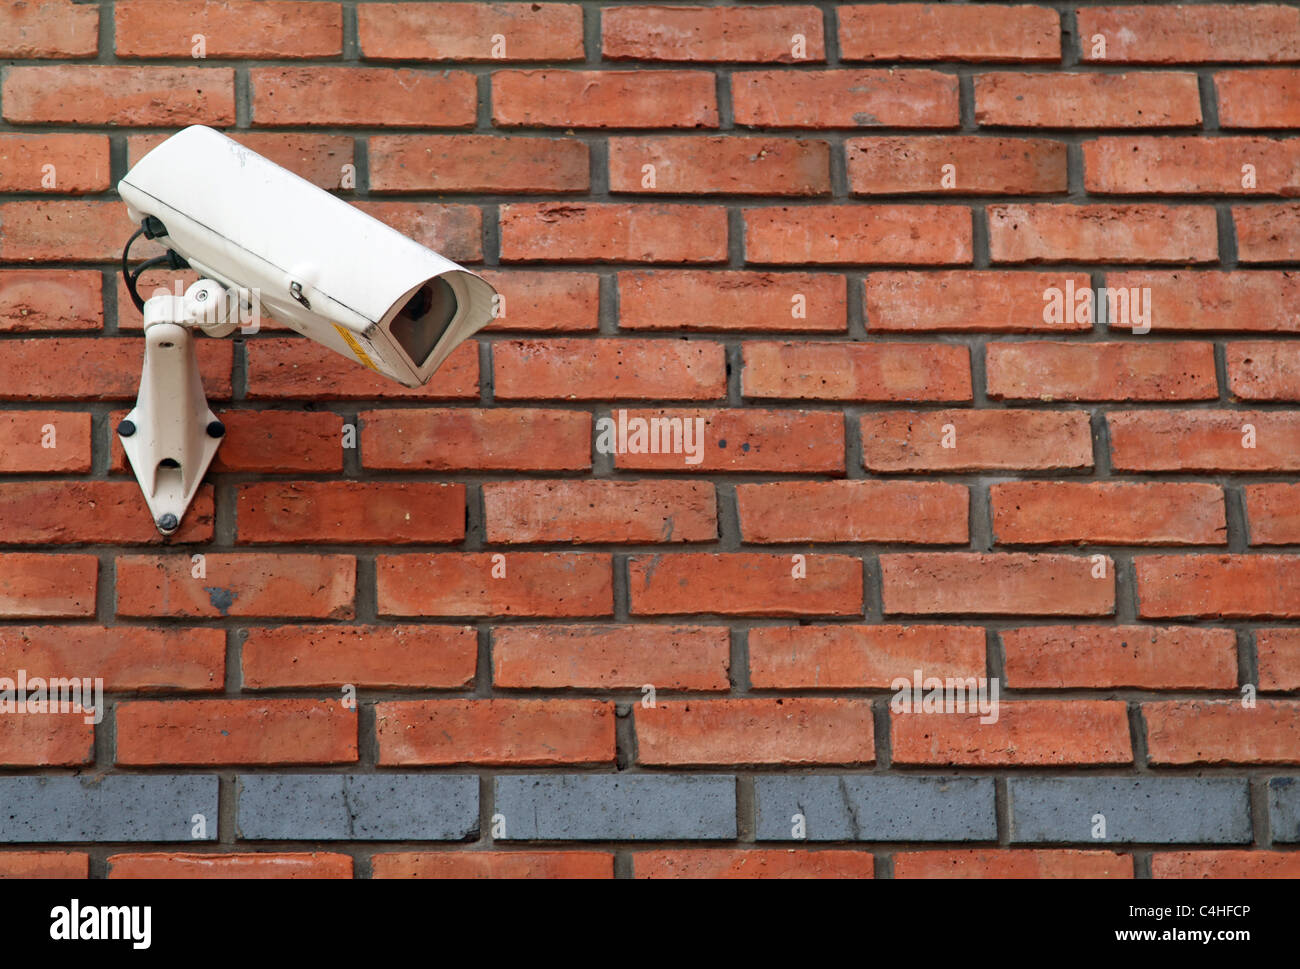 white-cctv-camera-mounted-on-a-red-brick